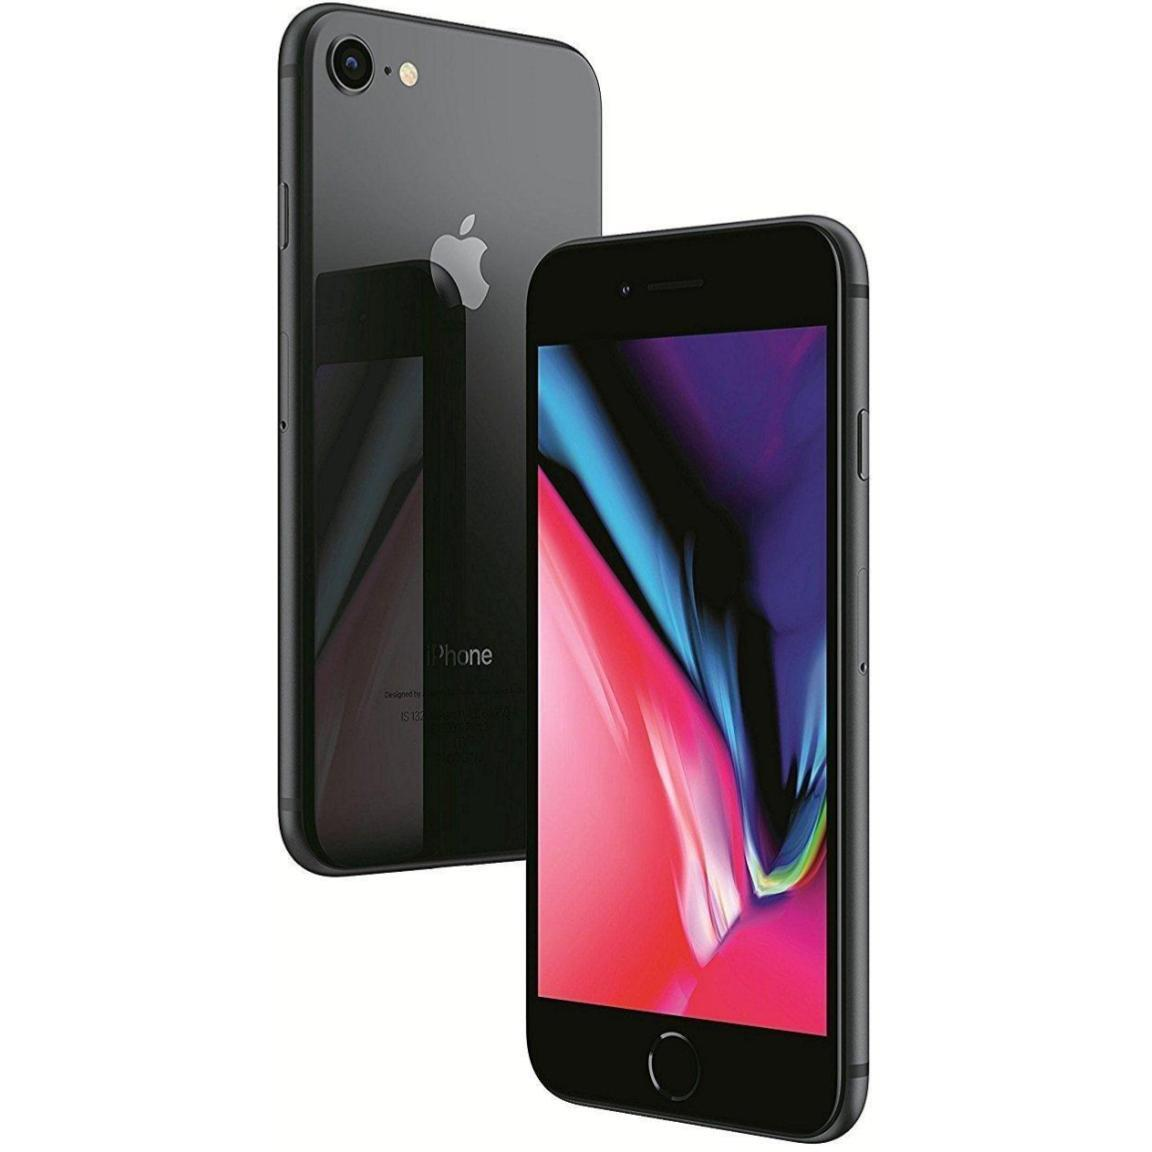 Apple iPhone 8 - 64GB - Space Gray (GSM Unlocked; AT&T / T-Mobile) Smartphone